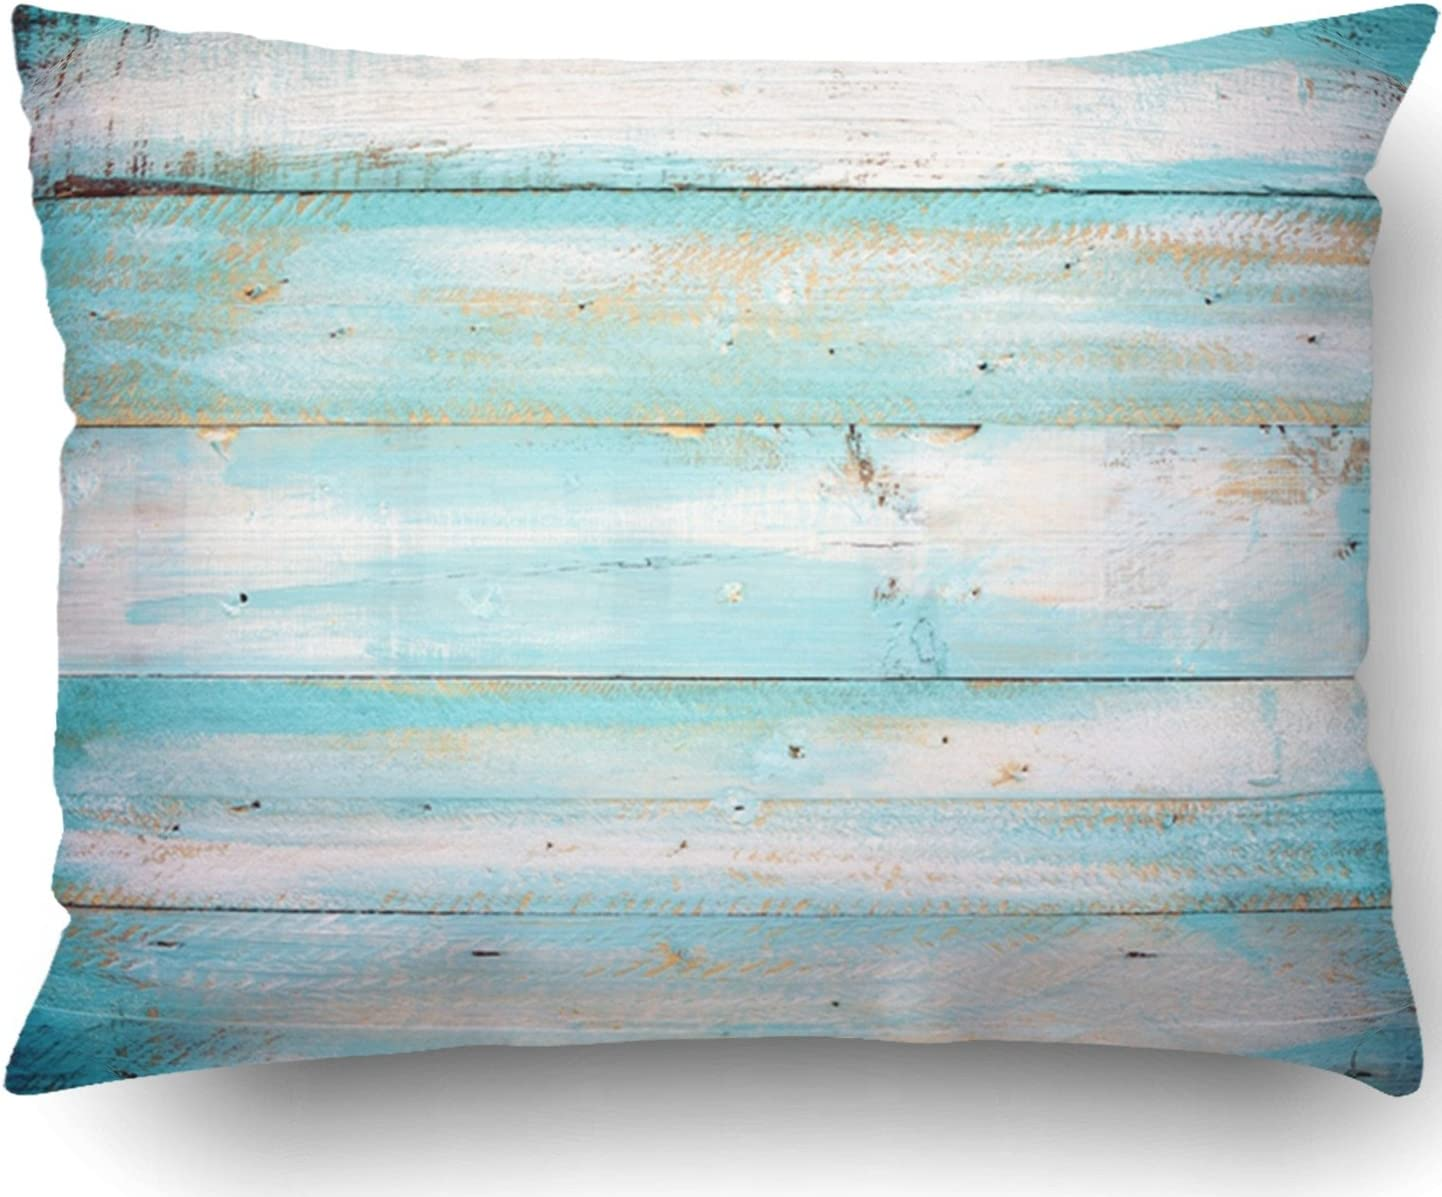 Emvency Pillow Covers Decorative Vintage Beach Wood Old Blue Color Wooden Plank Bulk With Zippered 16x16 Square Pillow Case For Home Bed Couch Sofa Car One Sided